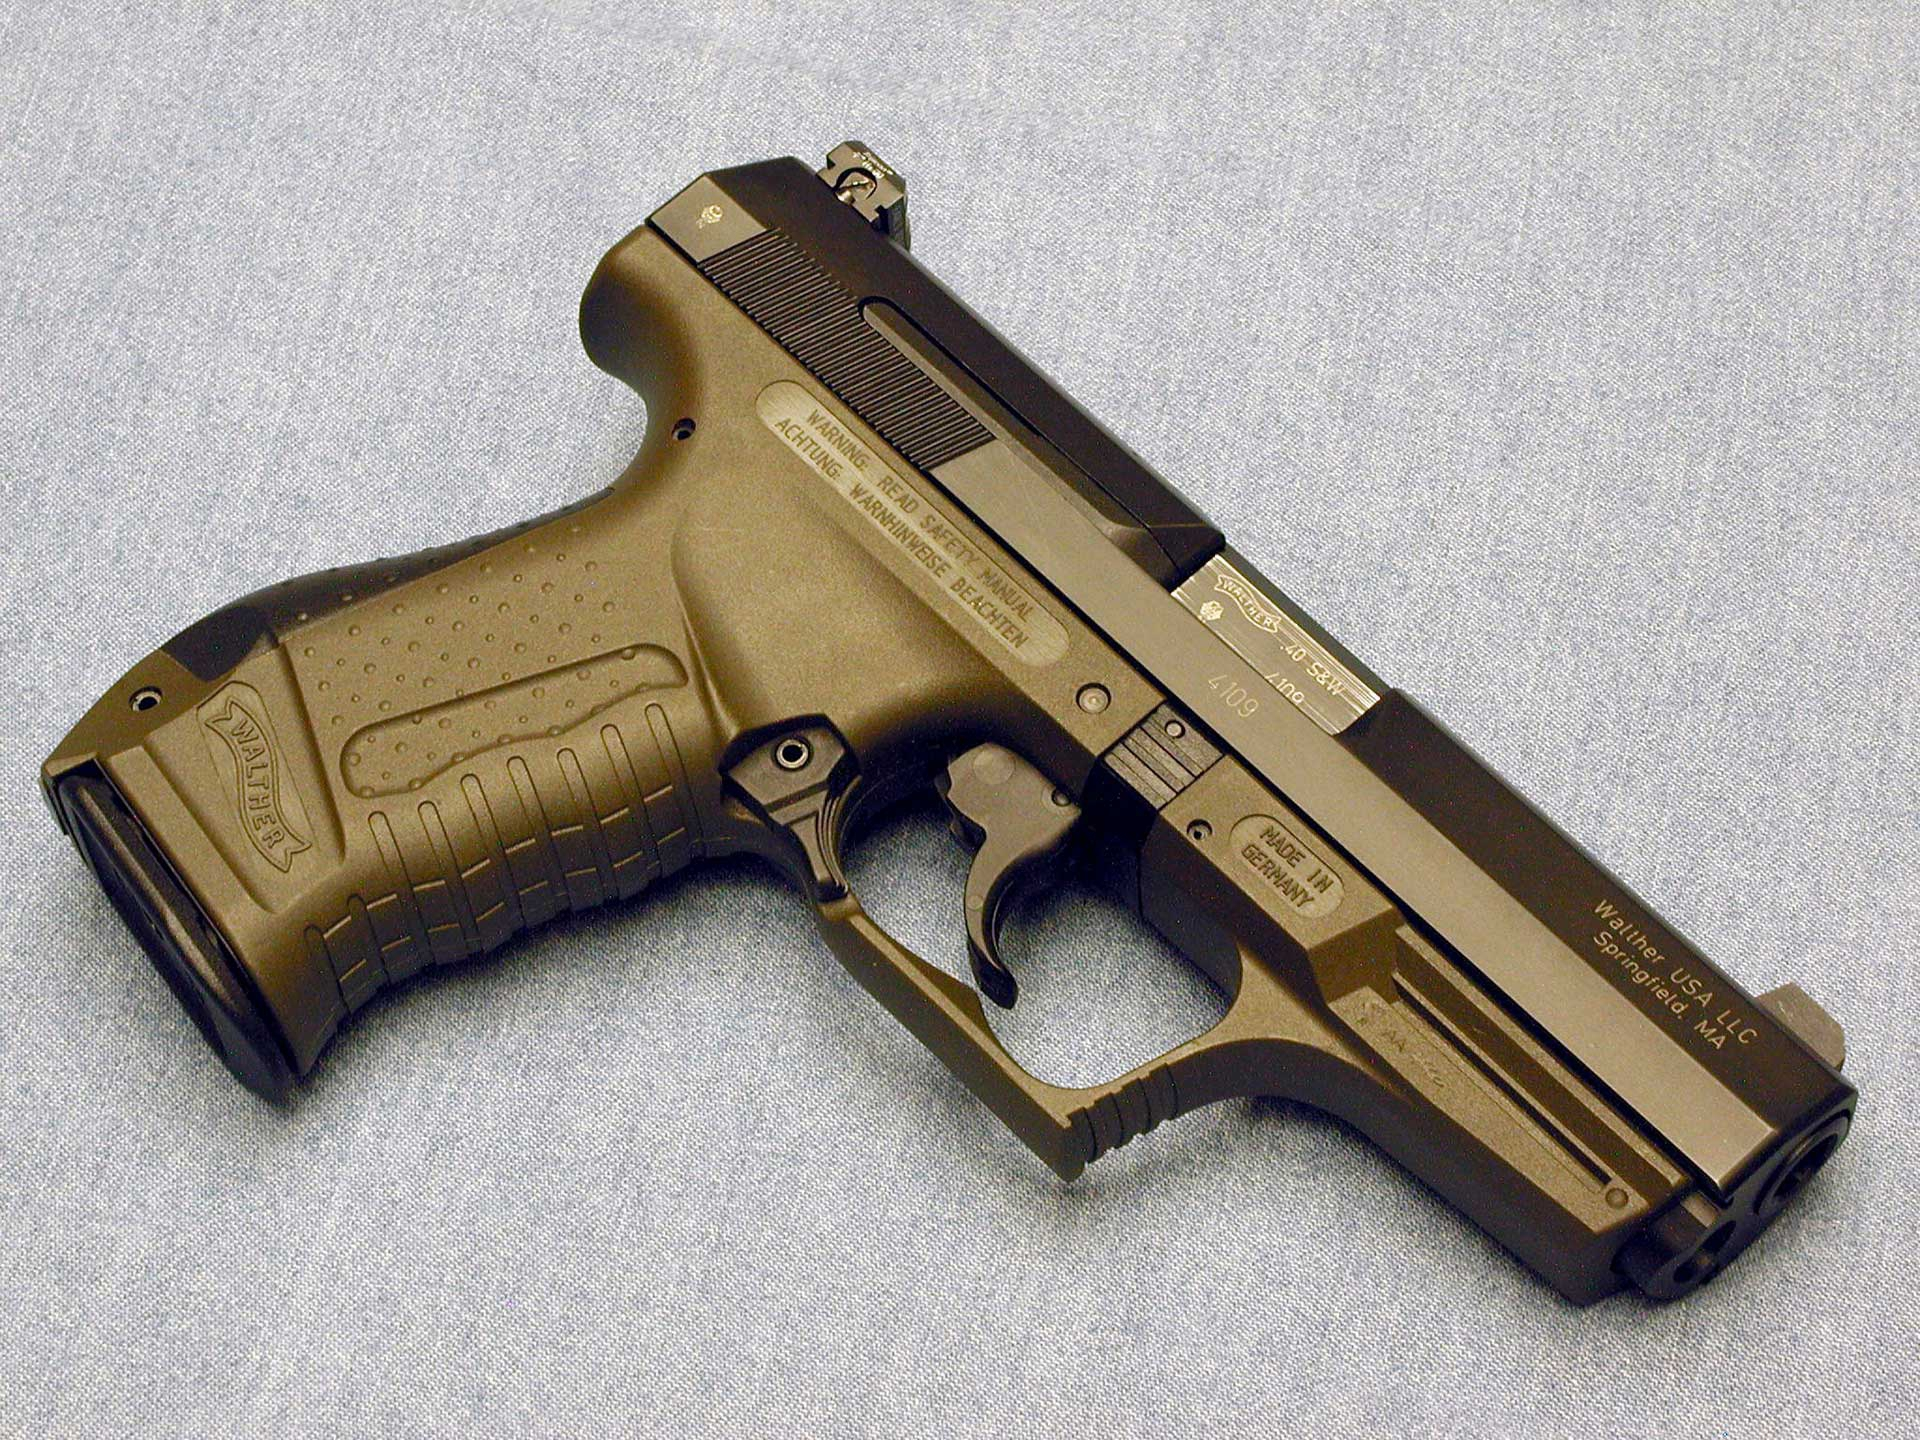 Walther P99 As High Definition 1920x1440